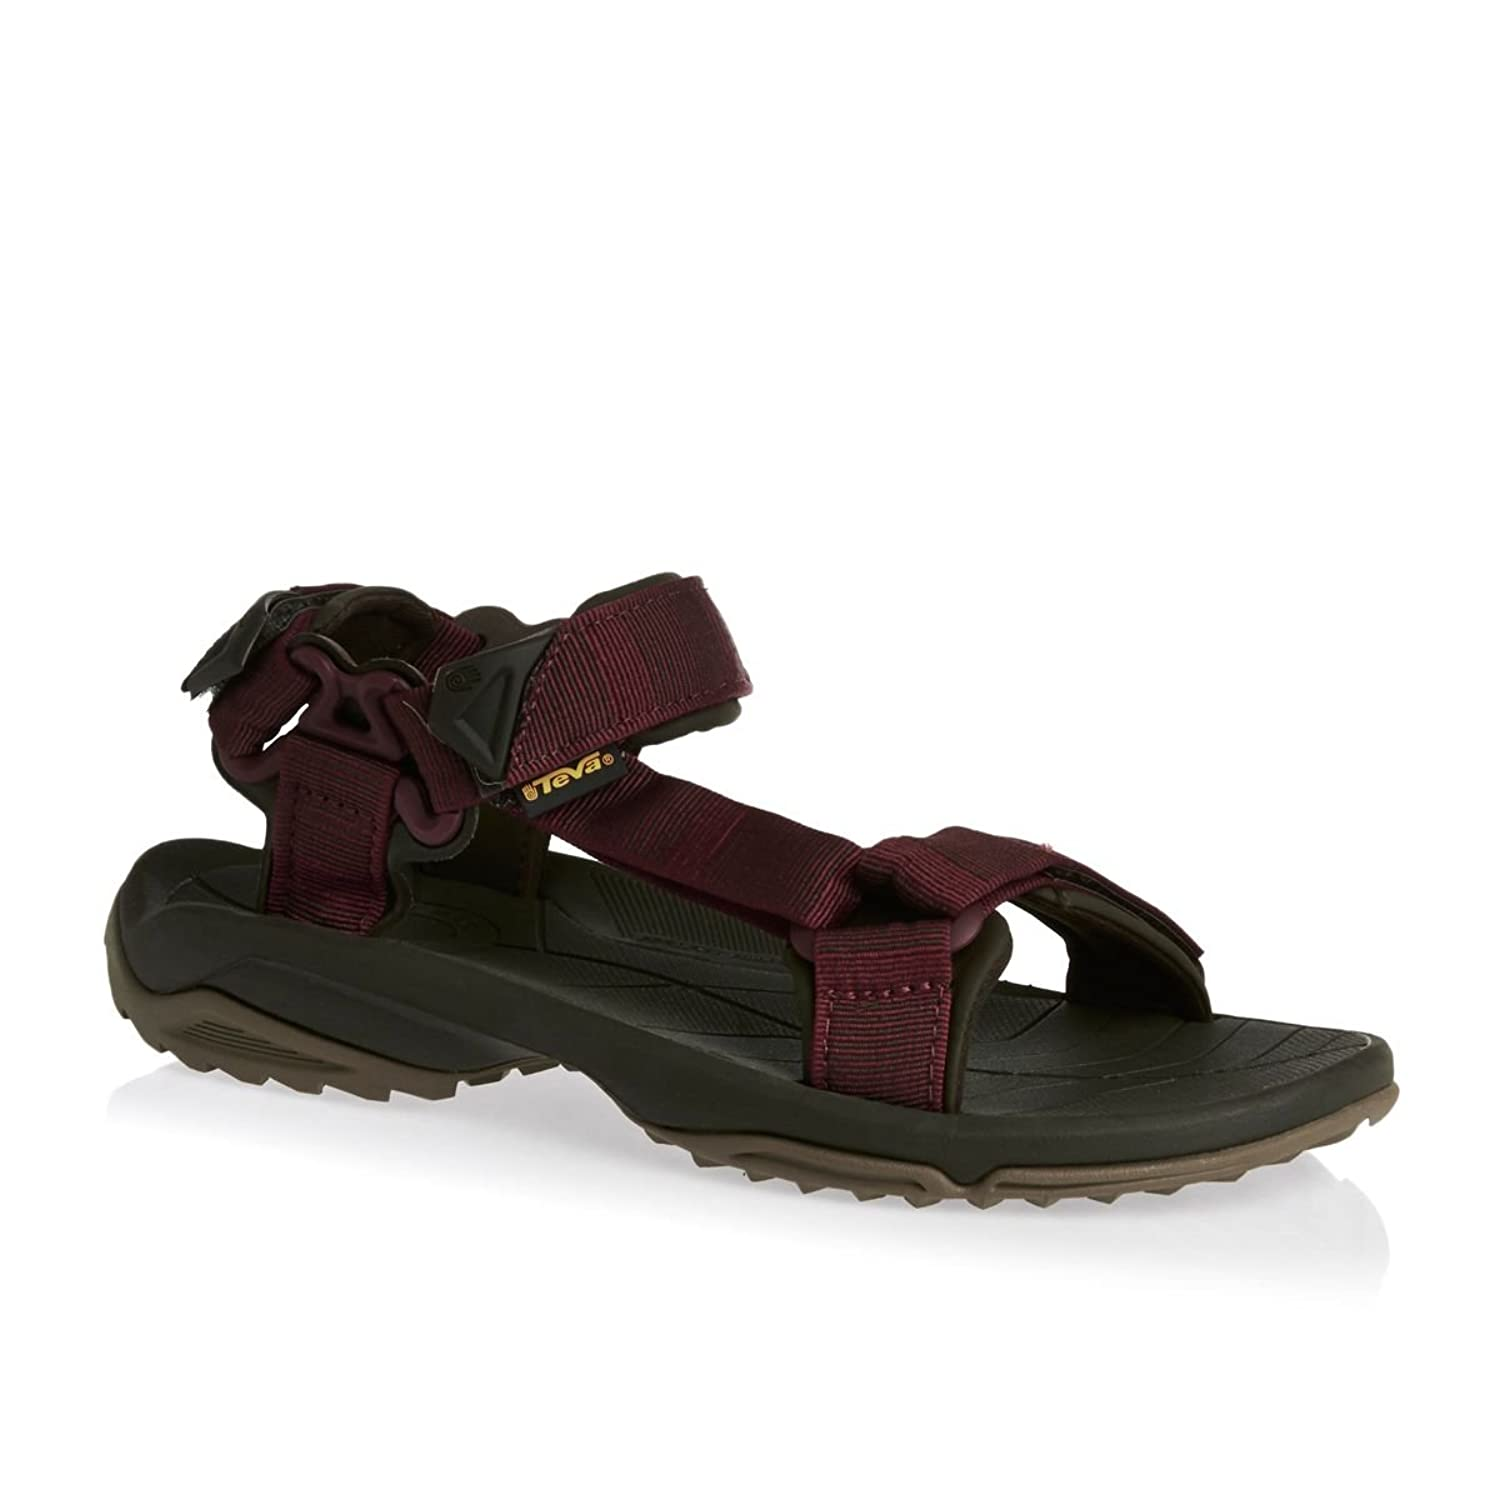 d9d3c9f09a45 Teva Men s Terra Fi Lite Sandal  Amazon.co.uk  Shoes   Bags